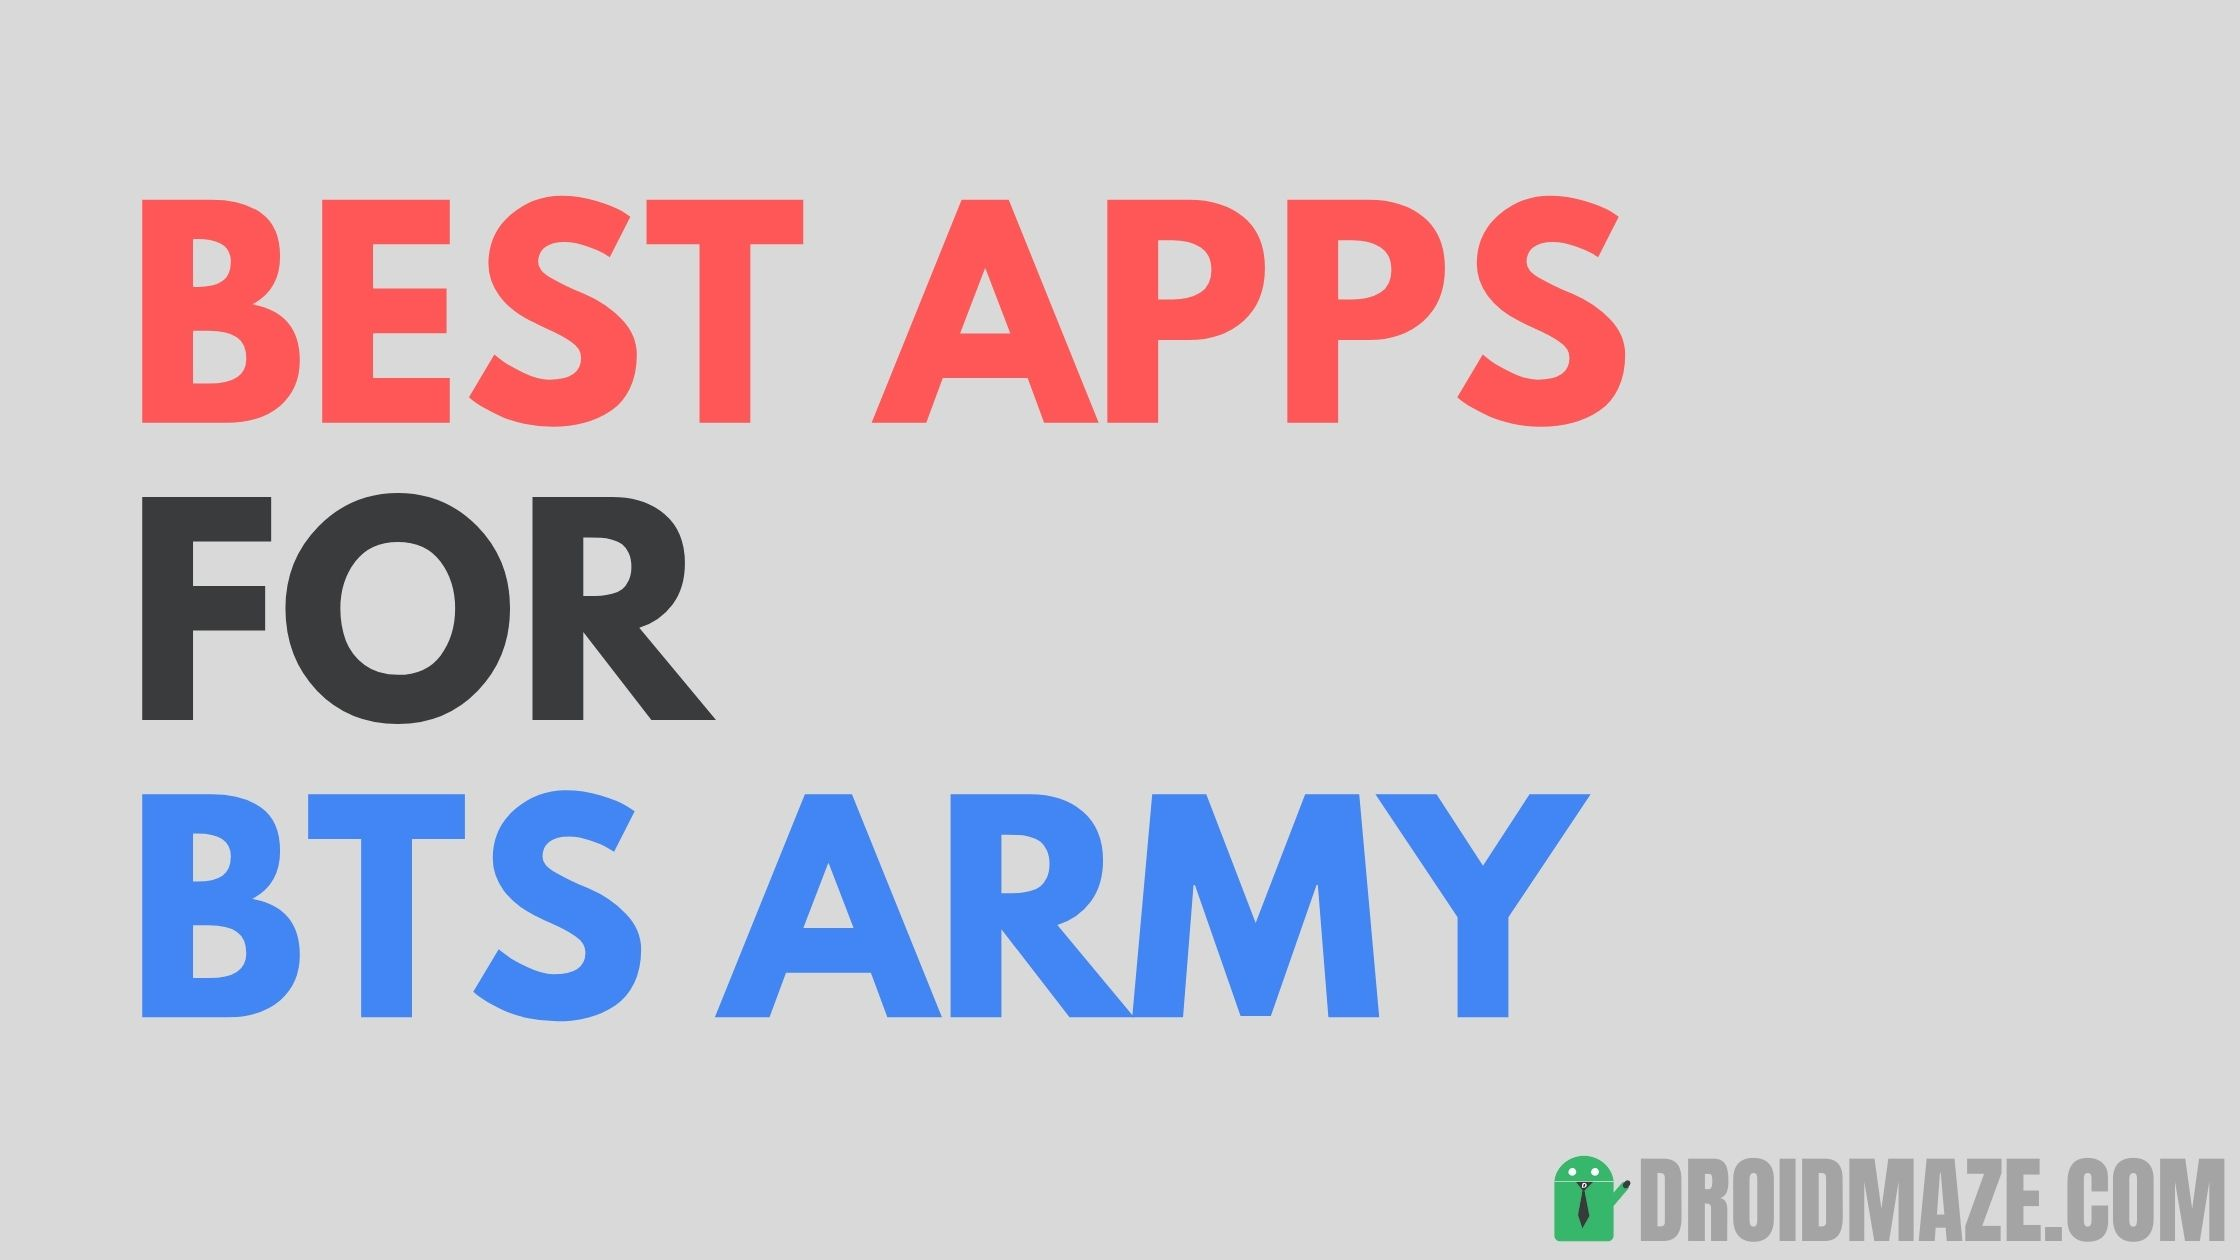 BEST APPS for BTS ARMY